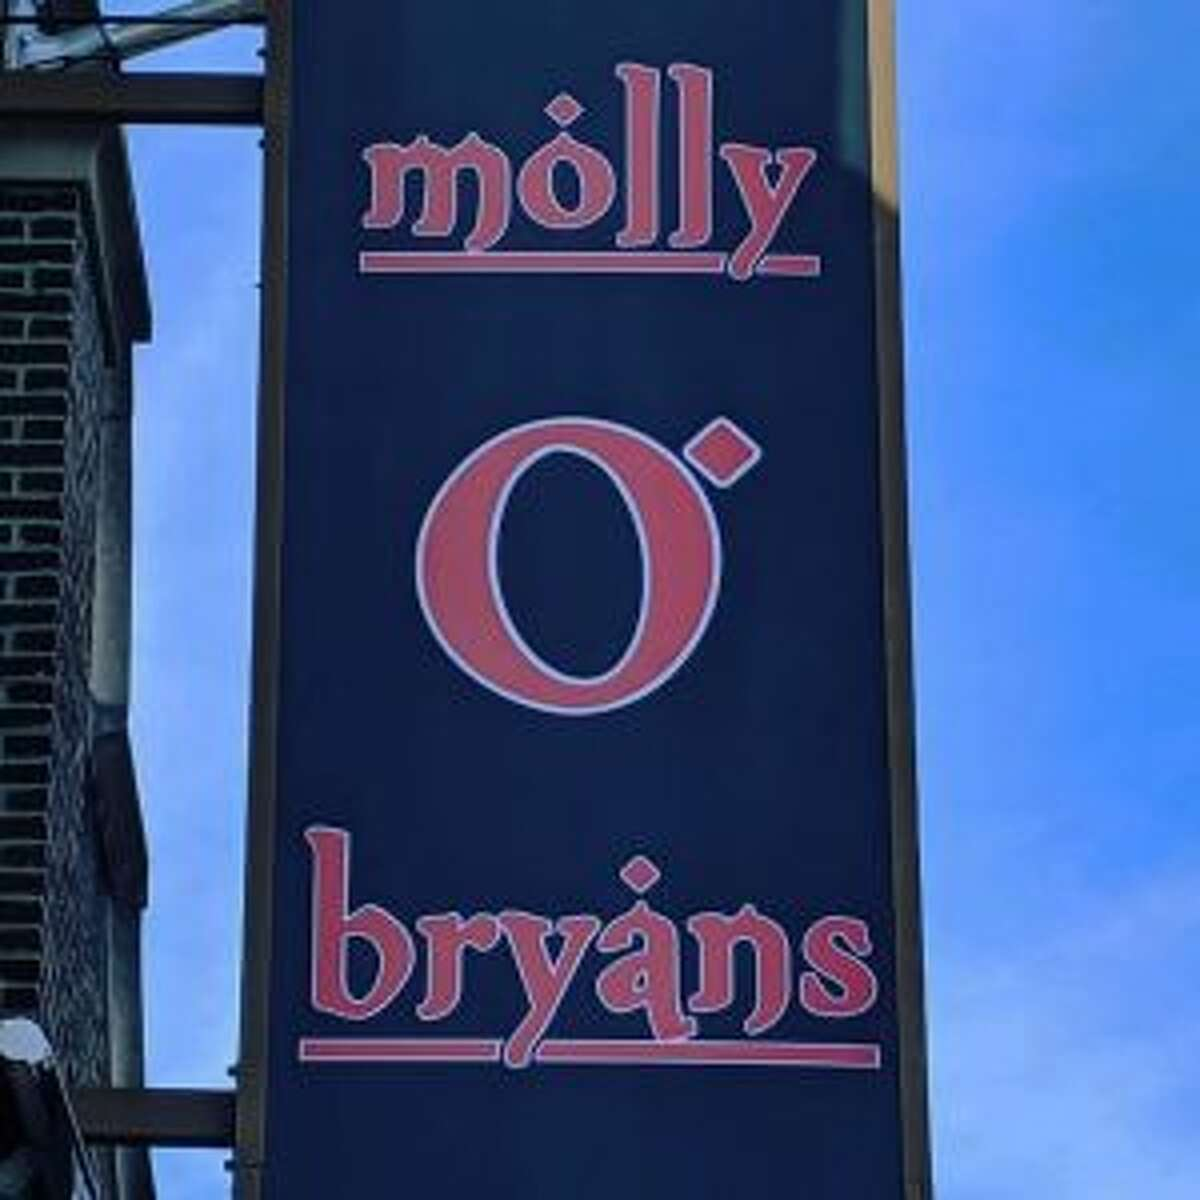 Molly O'Bryans replaces Graney's Stout at 904 Broadway in Albany.